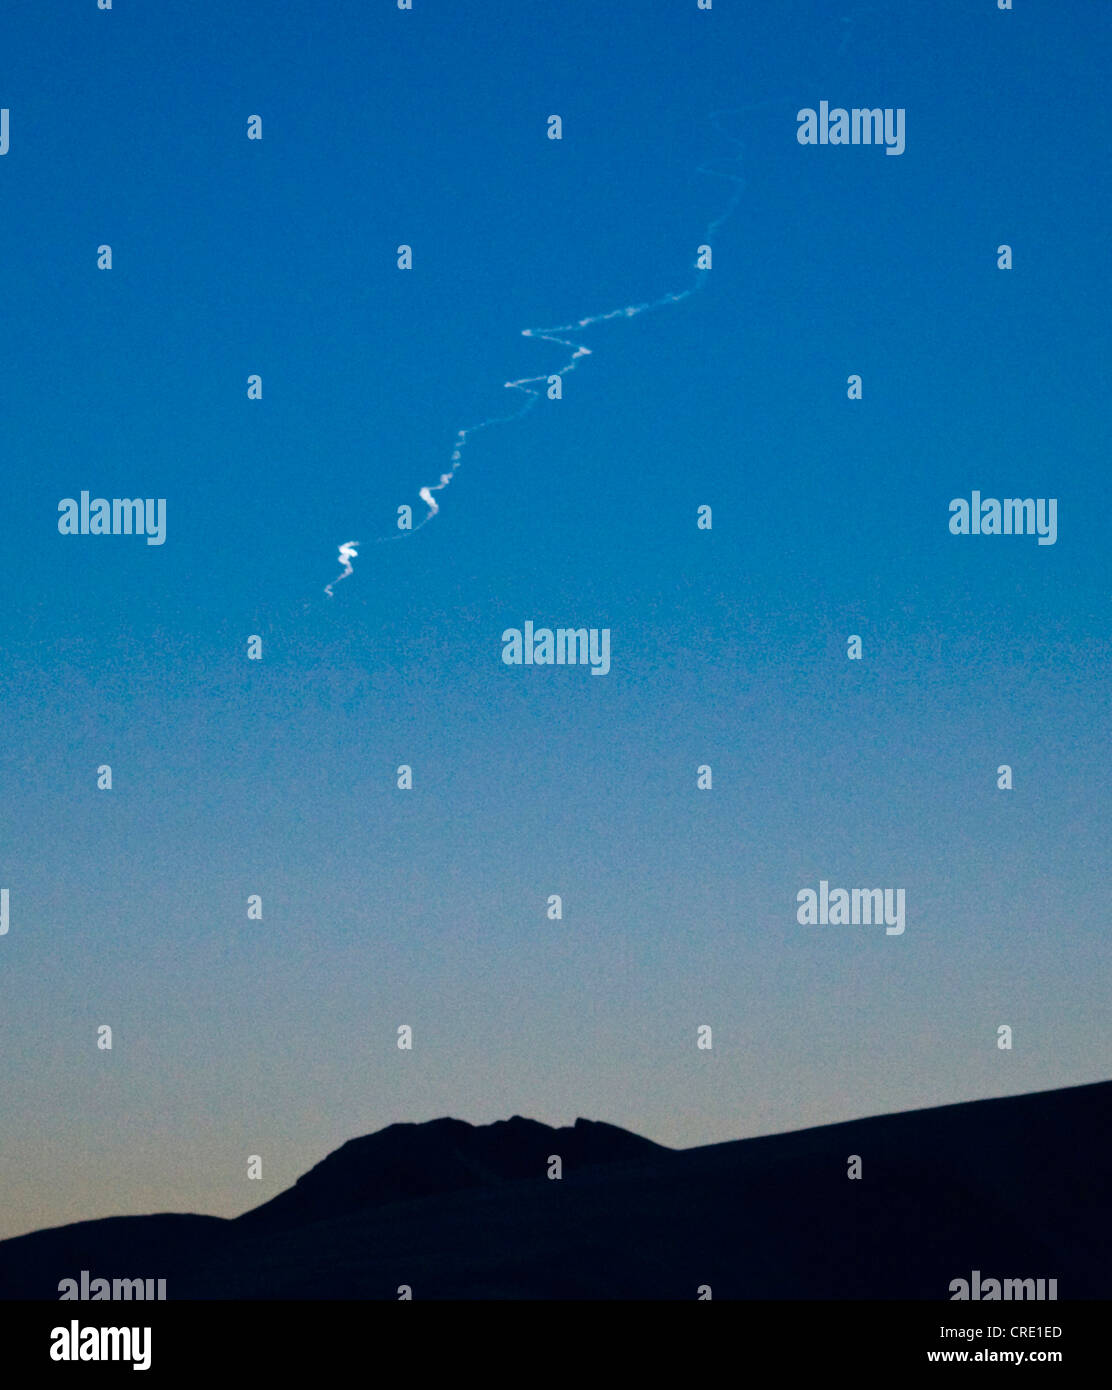 meteorite trace, direction West to South, about 1 min after glow, Norway, Troms, Kvaloeya - Stock Image